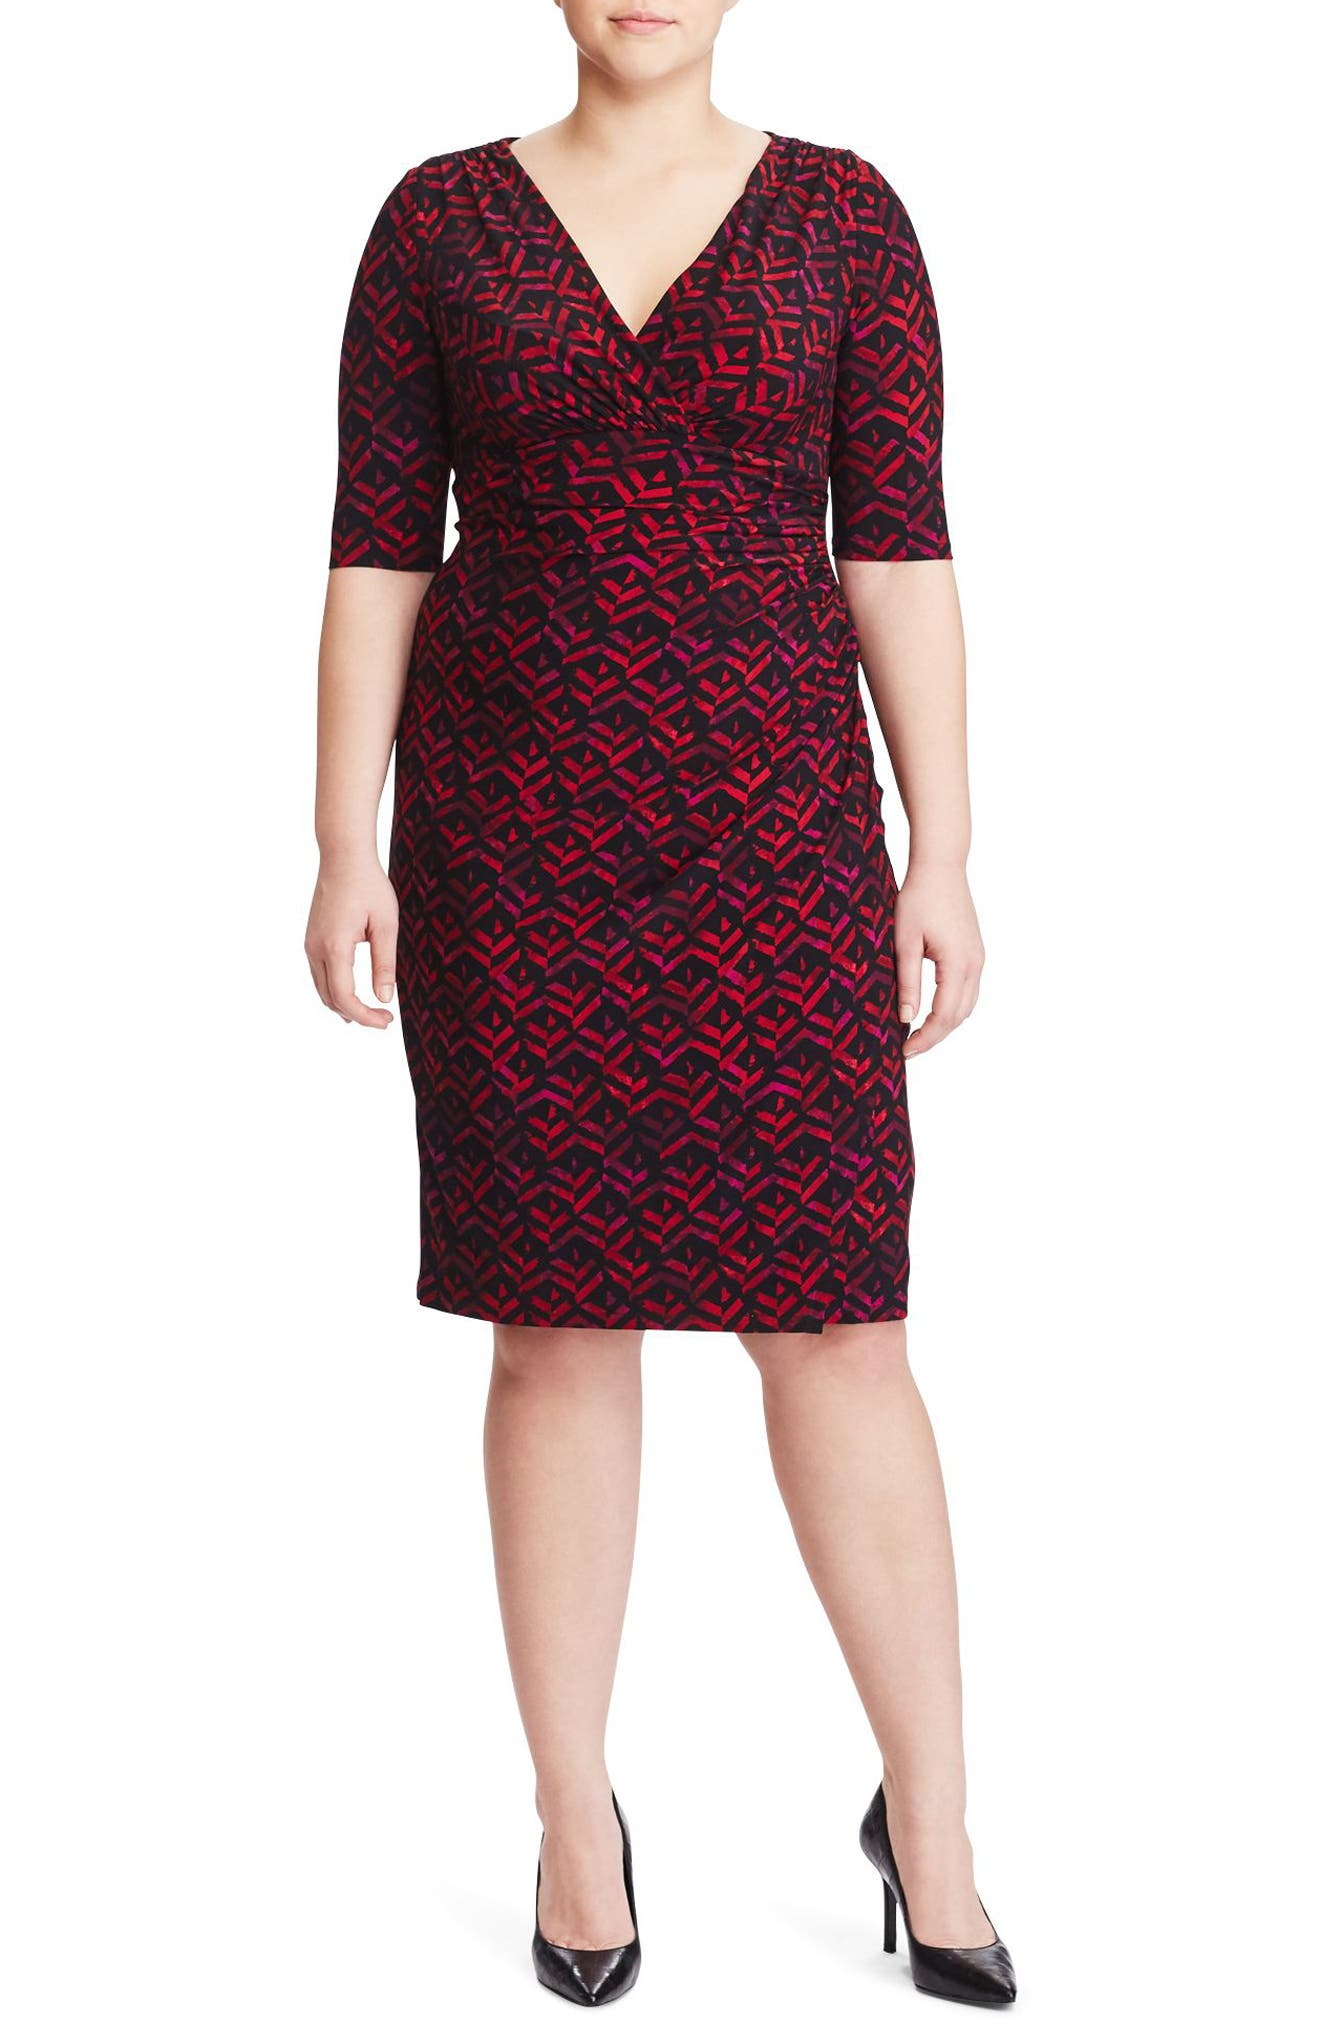 Lauren Ralph Lauren Faux Wrap Print Sheath Dress (Plus Size)